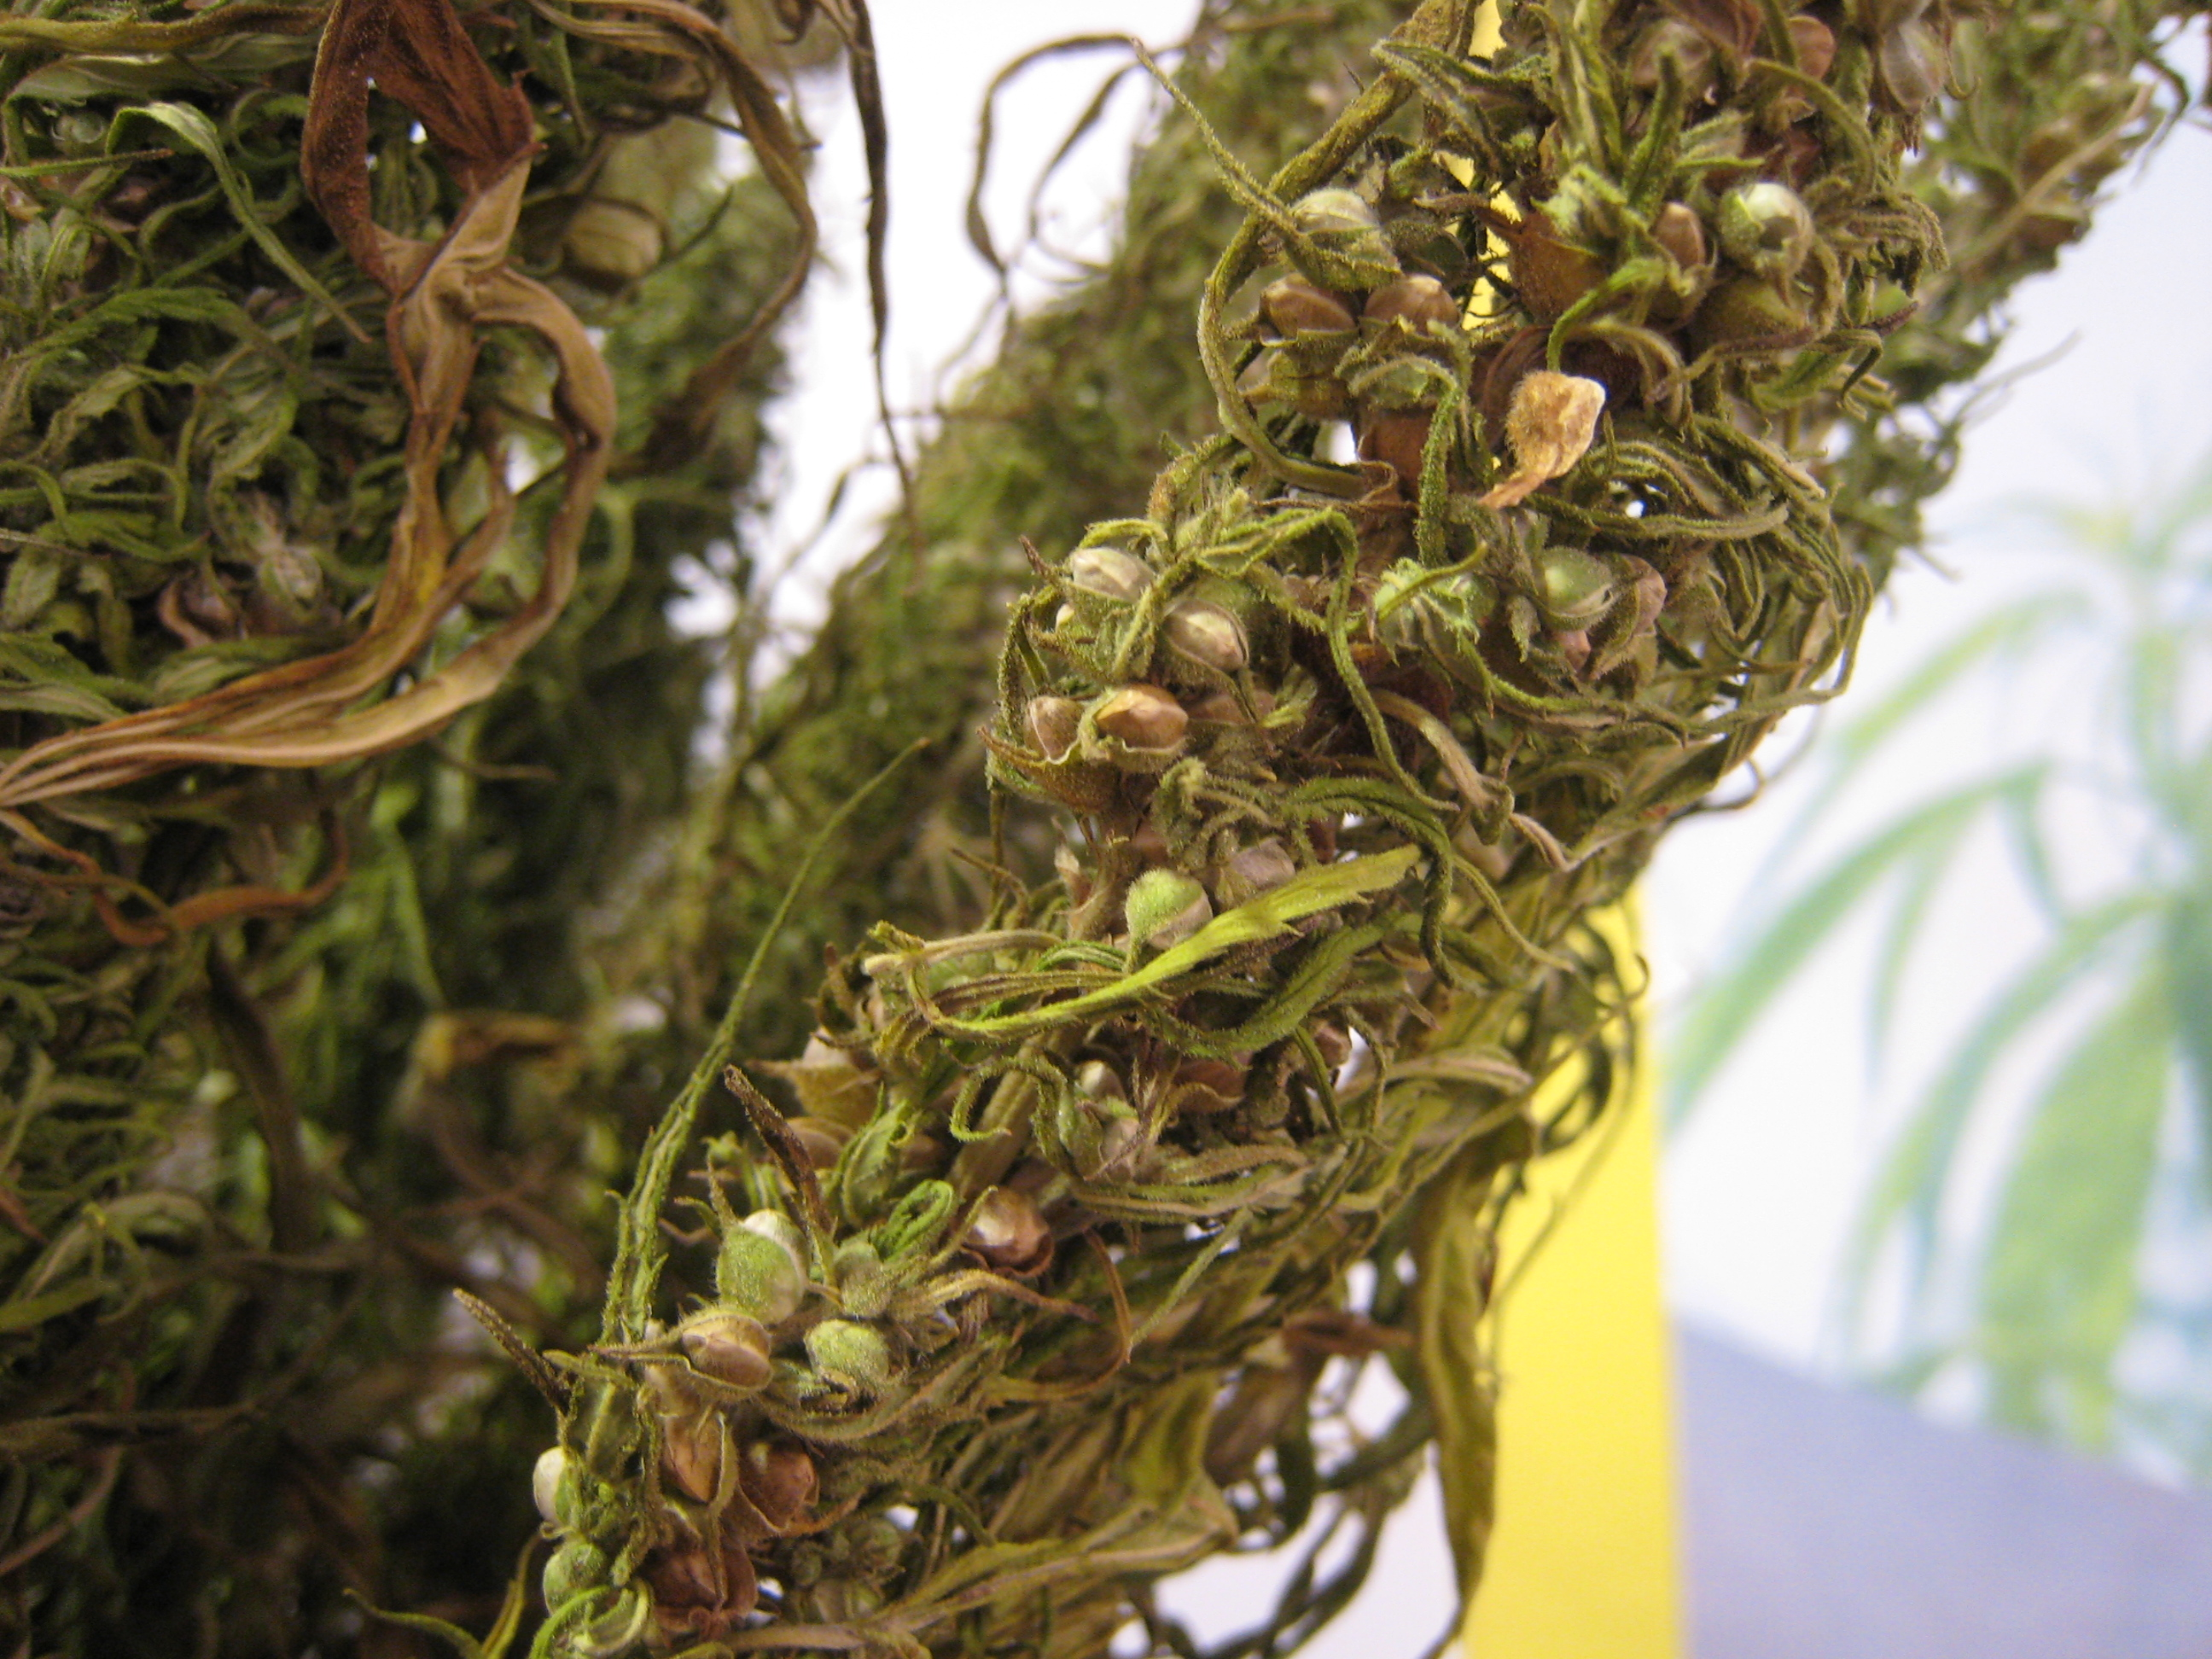 http://upload.wikimedia.org/wikipedia/commons/f/f4/Hemp_bunch-dried_out_-seeds_close_up_PNr%C2%B00063.jpg